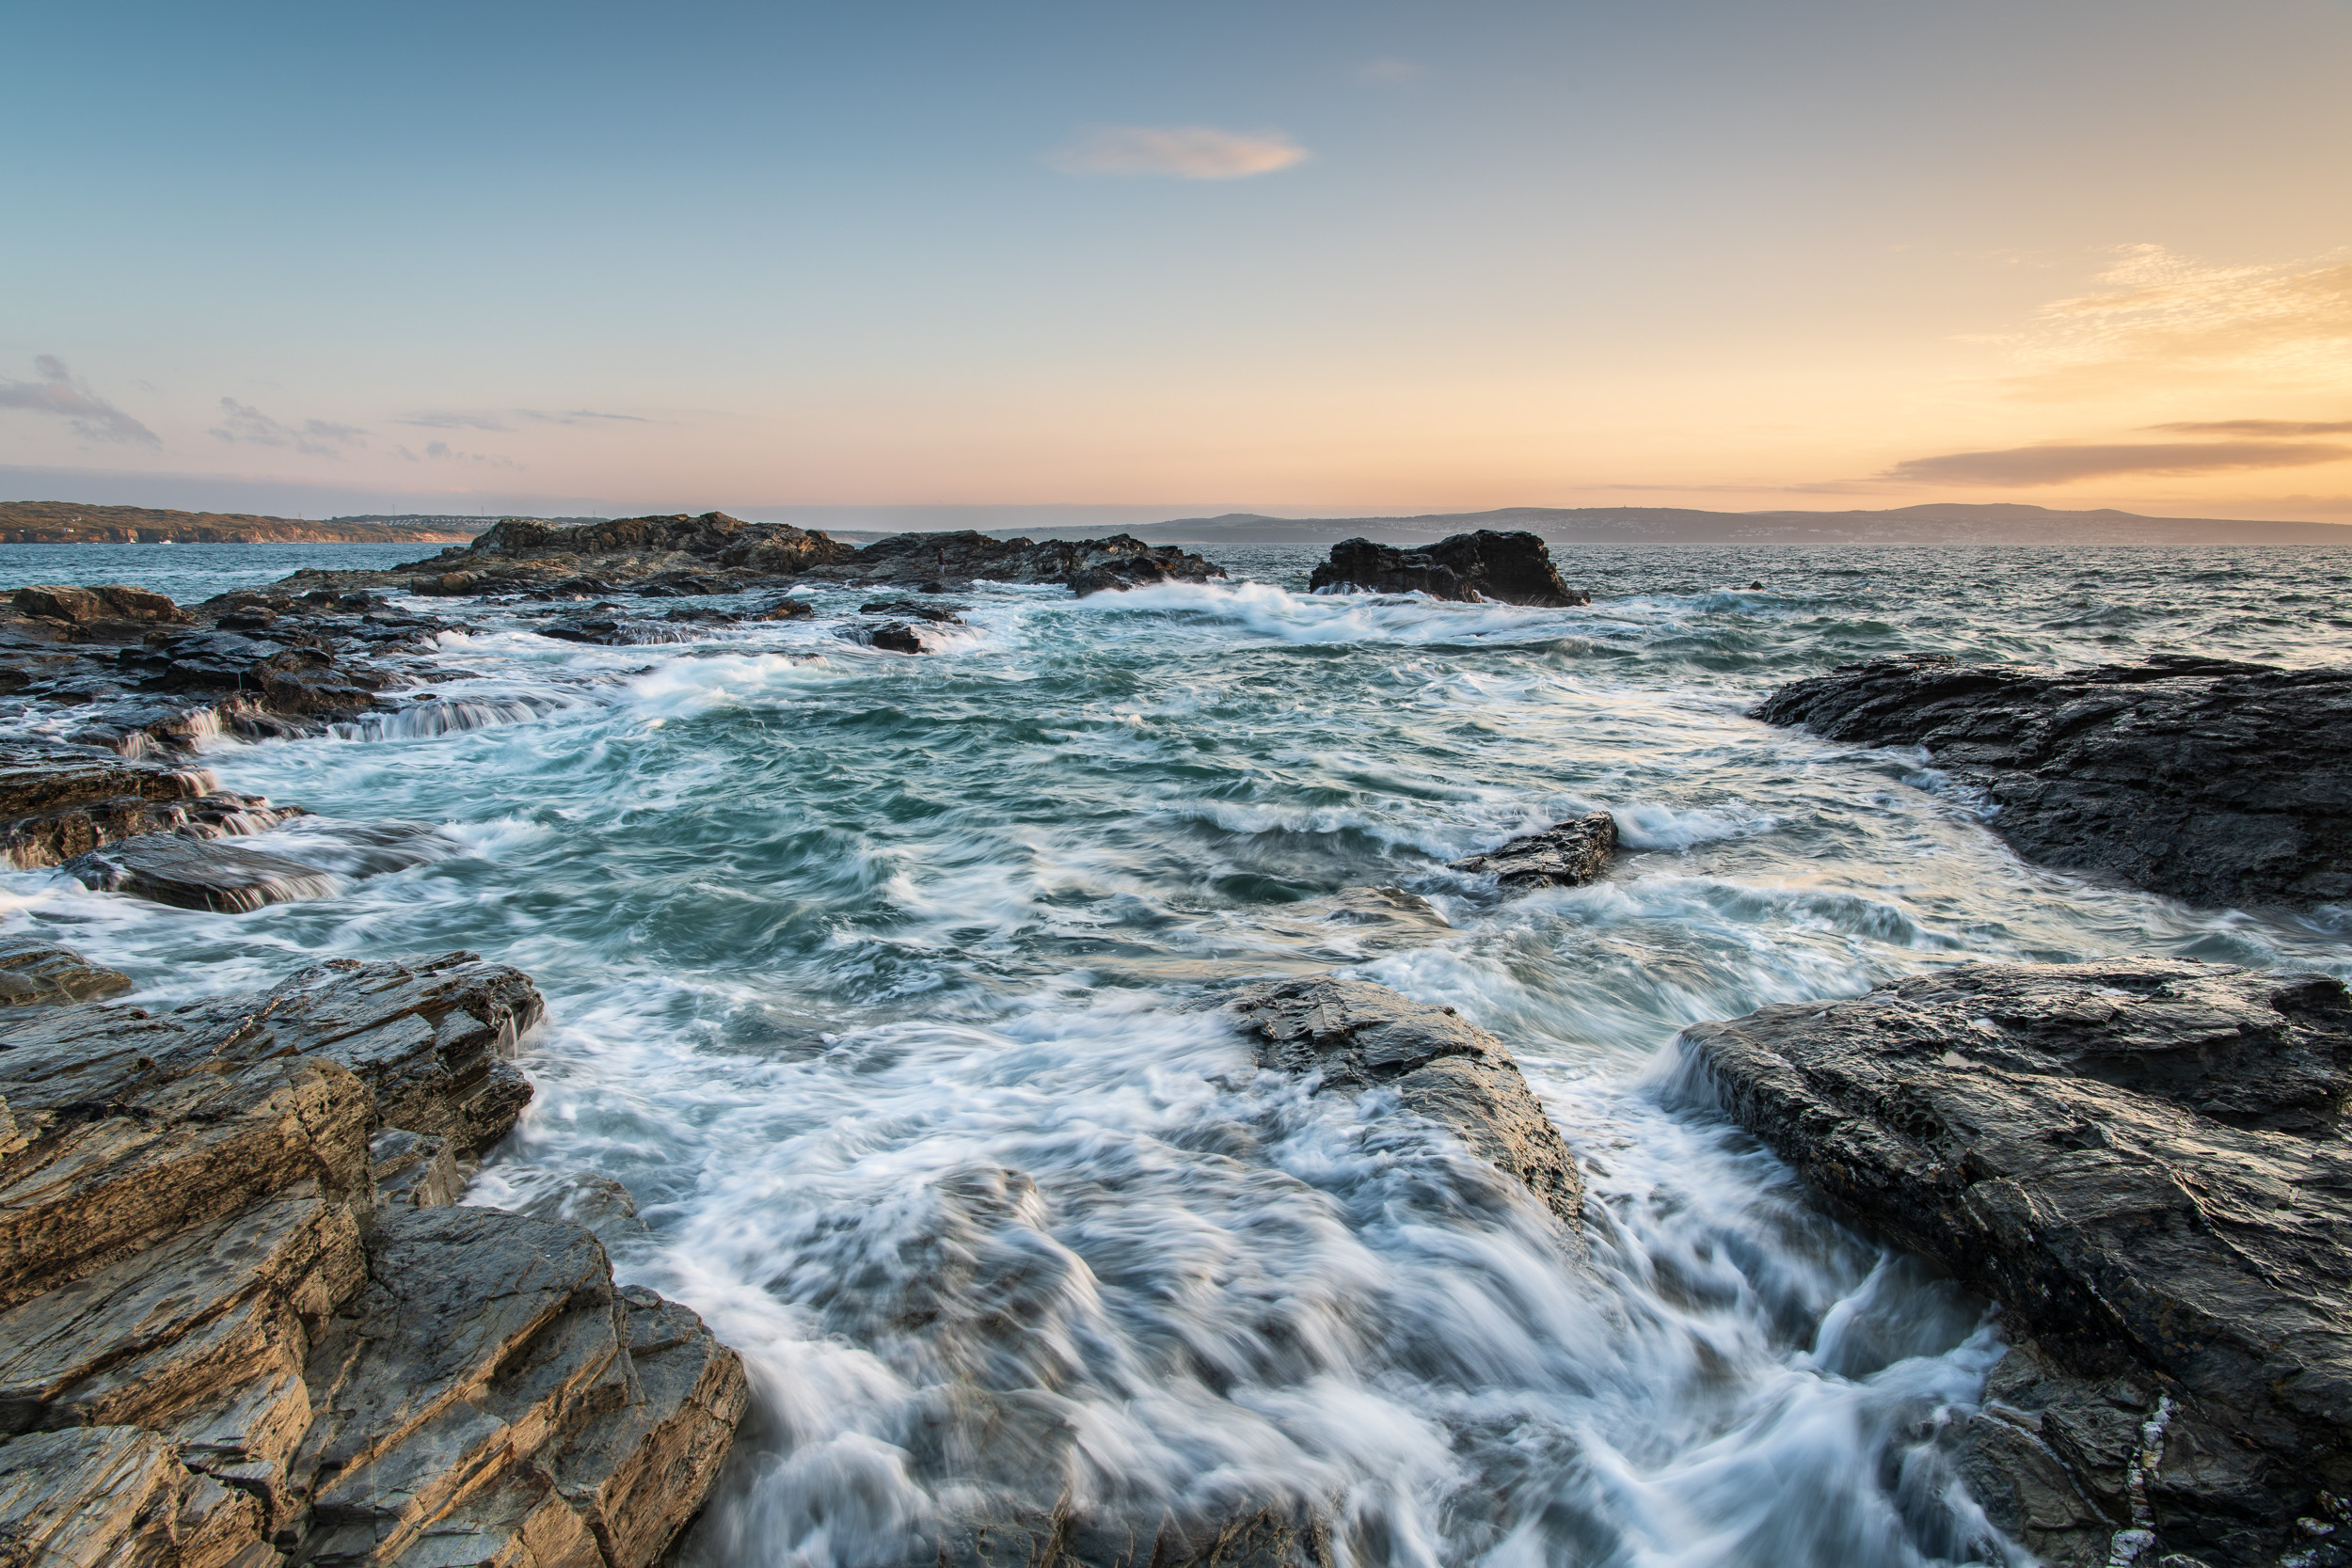 Godrevy Point Waves (Godrevy Cove), Cornwall